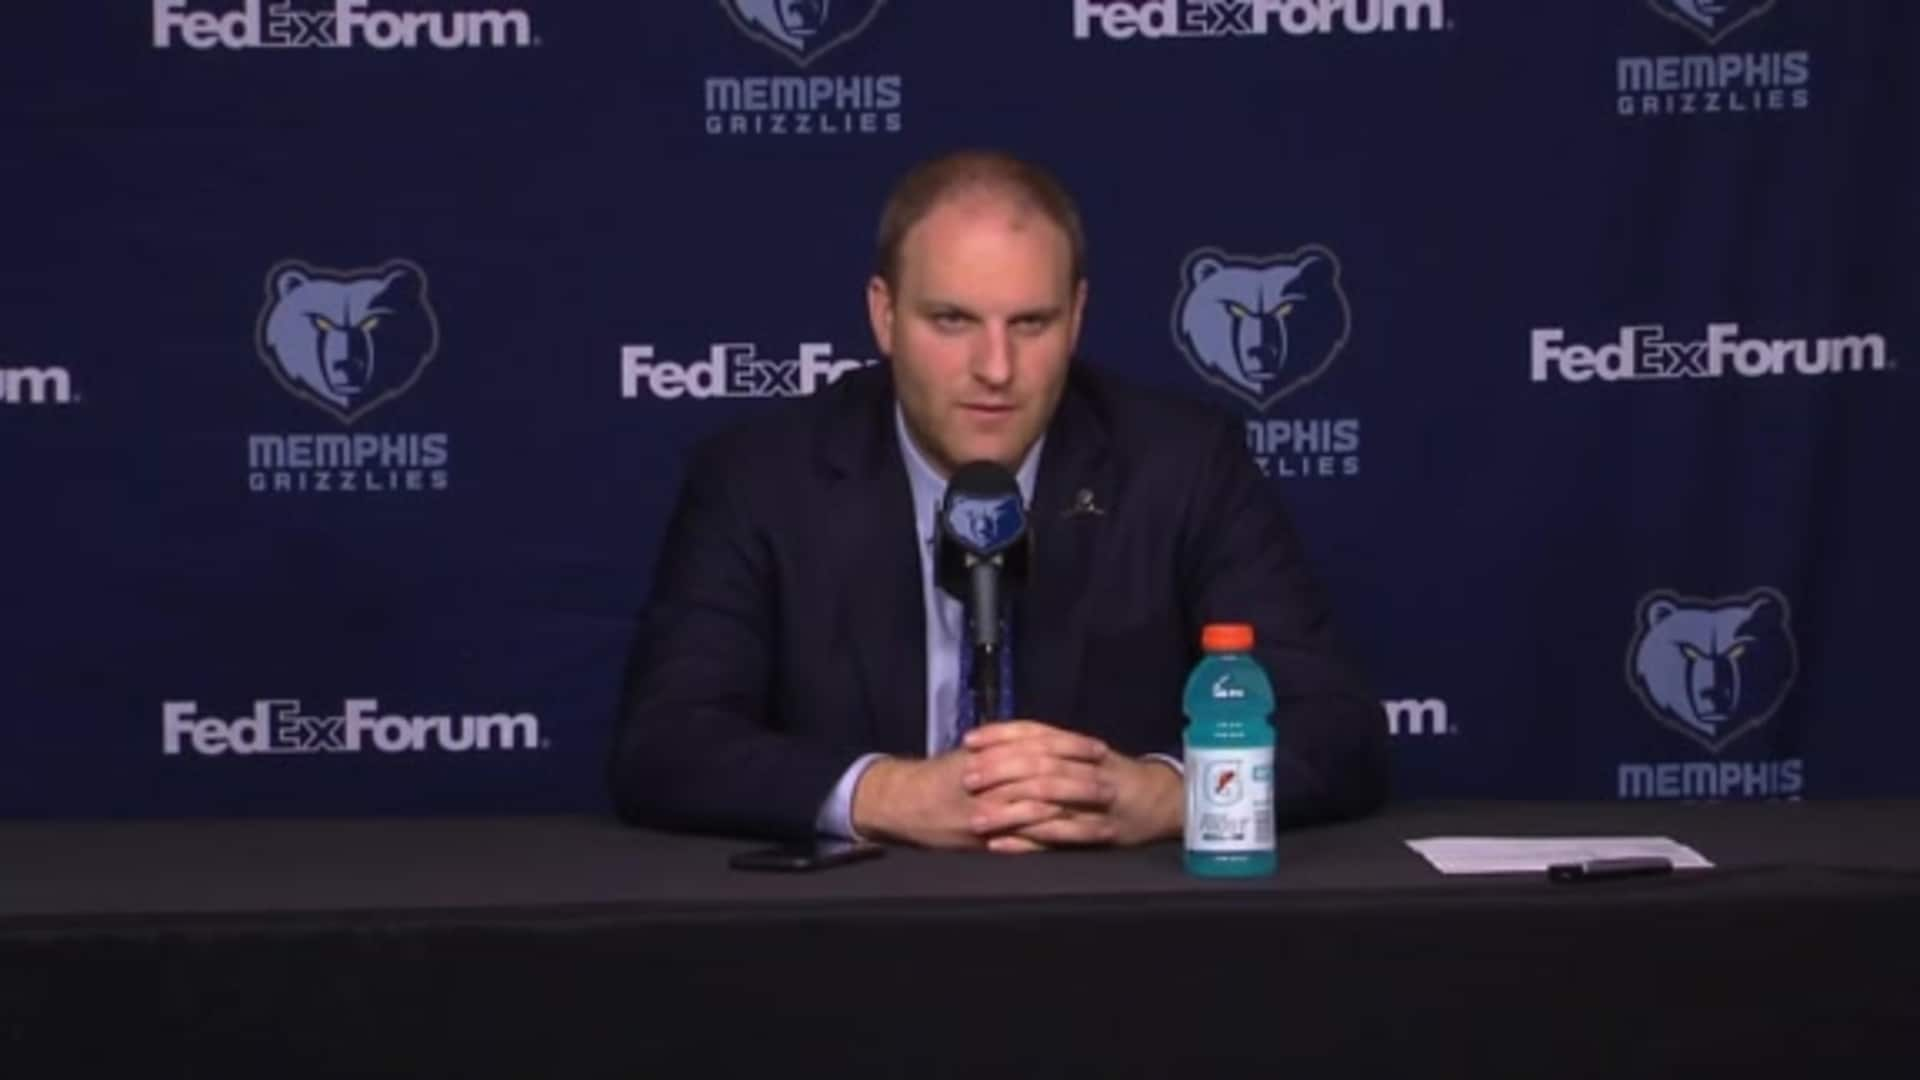 MEMvIND: Postgame press conference 12.2.19